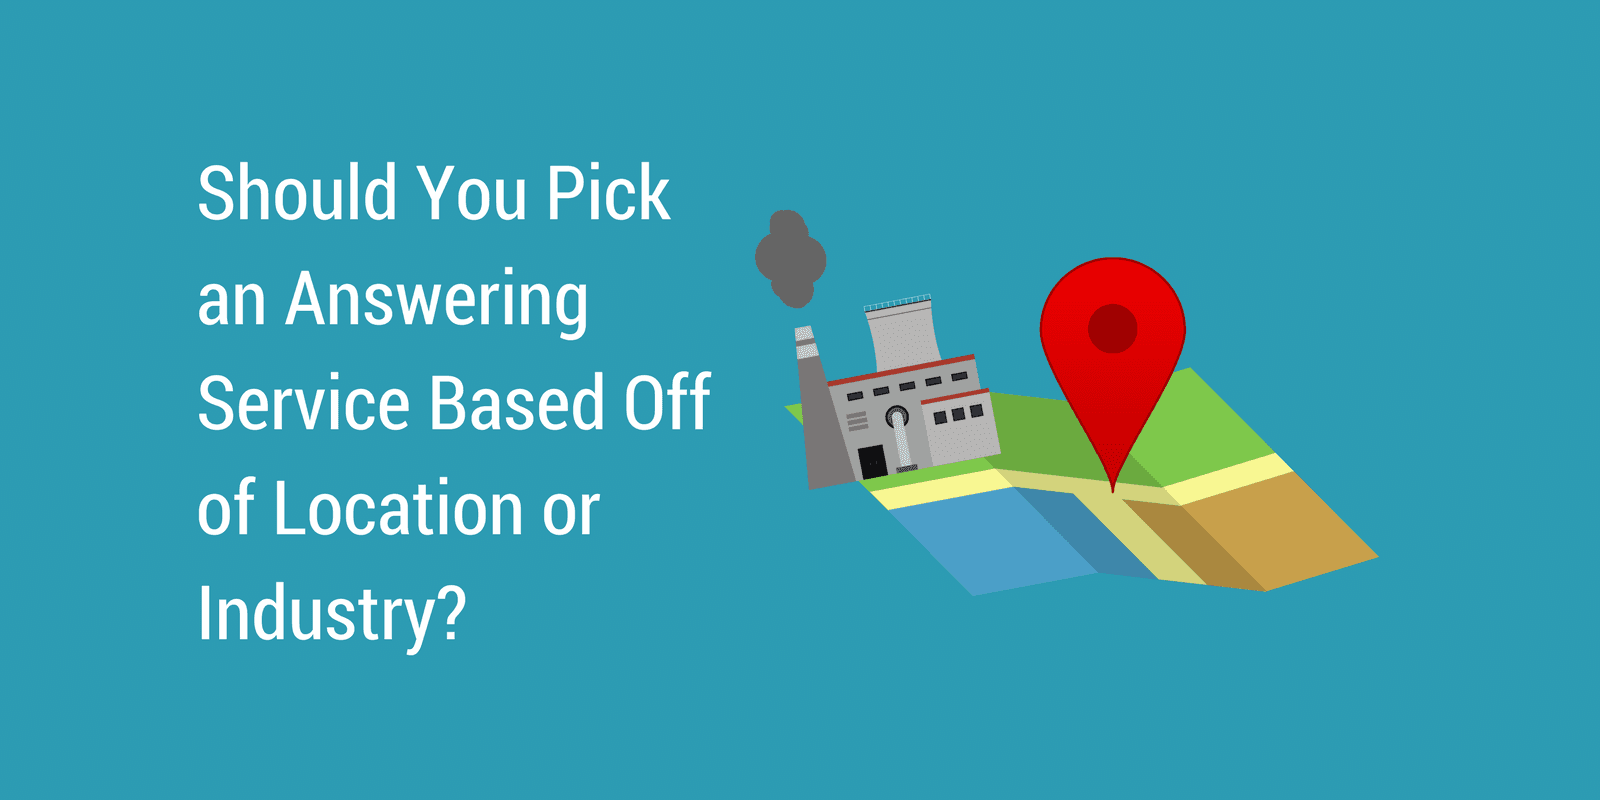 Should You Pick an Answering Service Based Off Location or Industry?